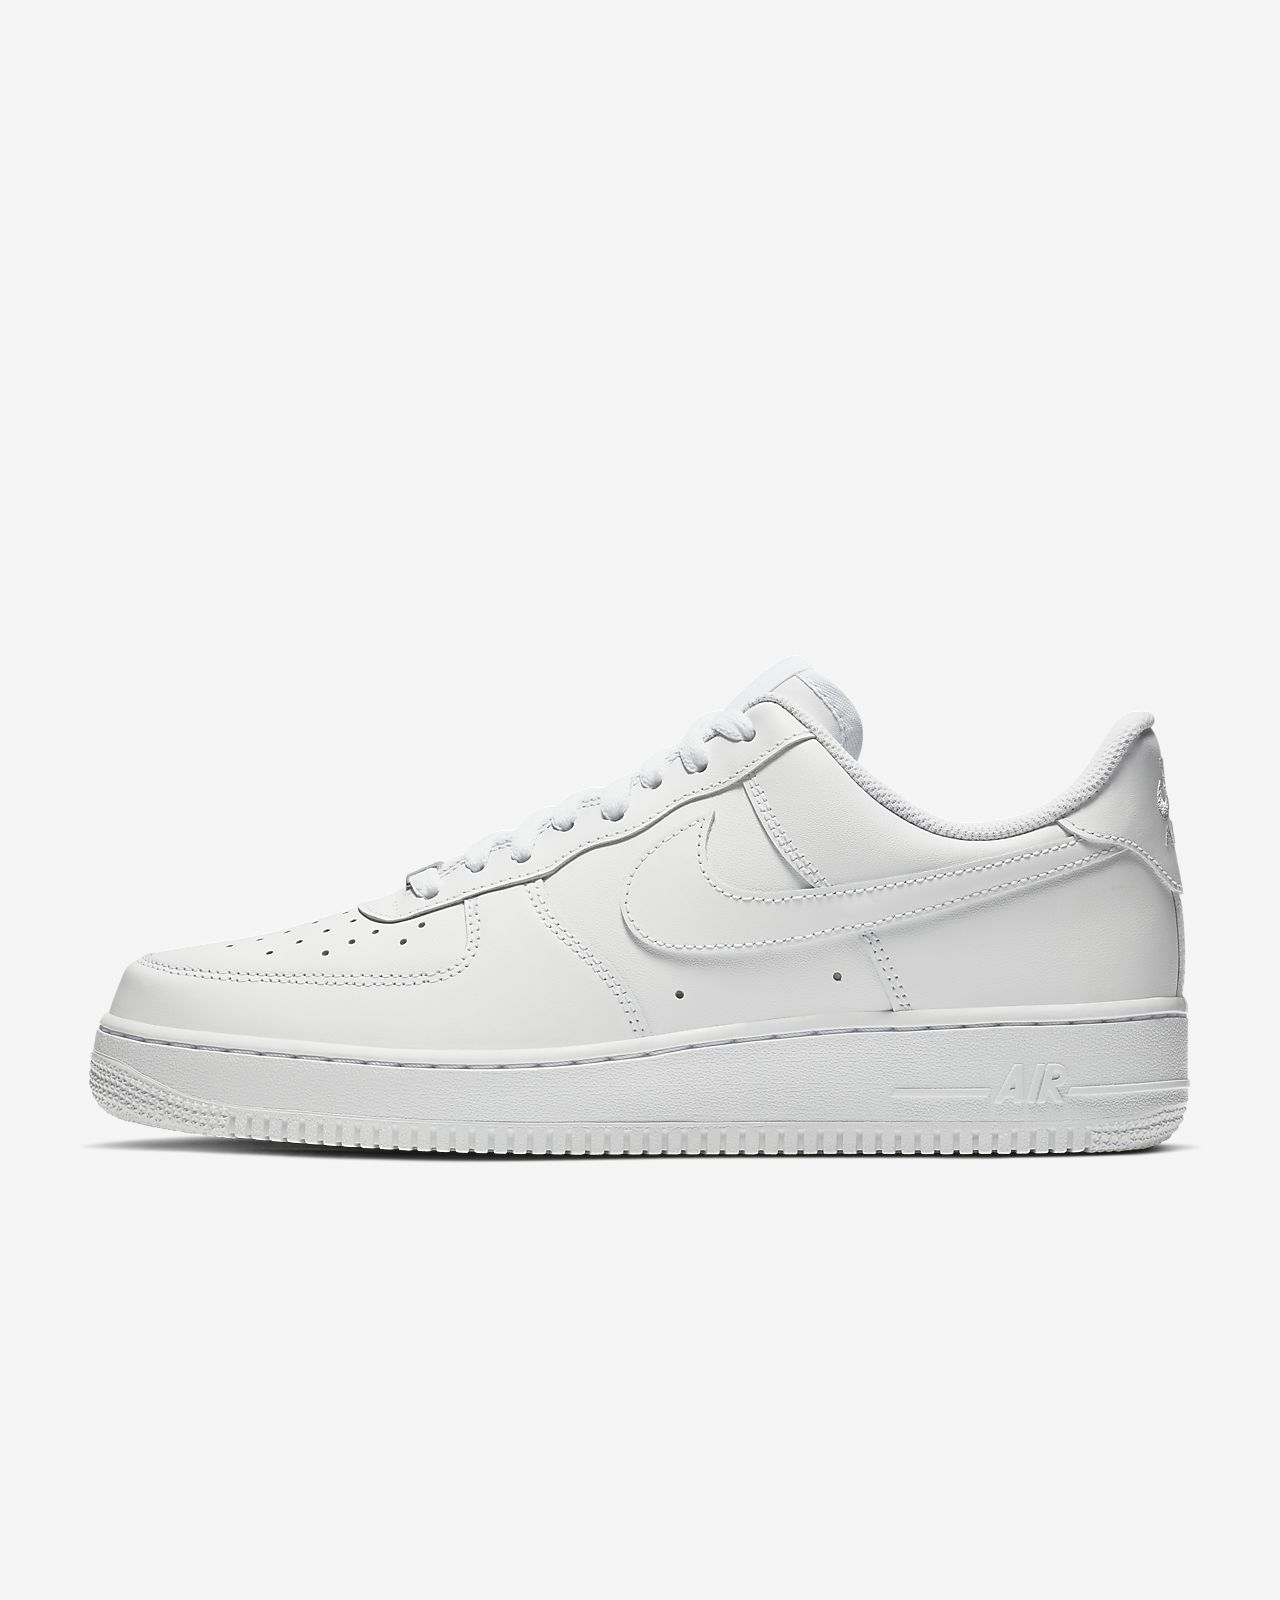 a3b6cdc4468d8e Nike Air Force 1  07 Shoe. Nike.com